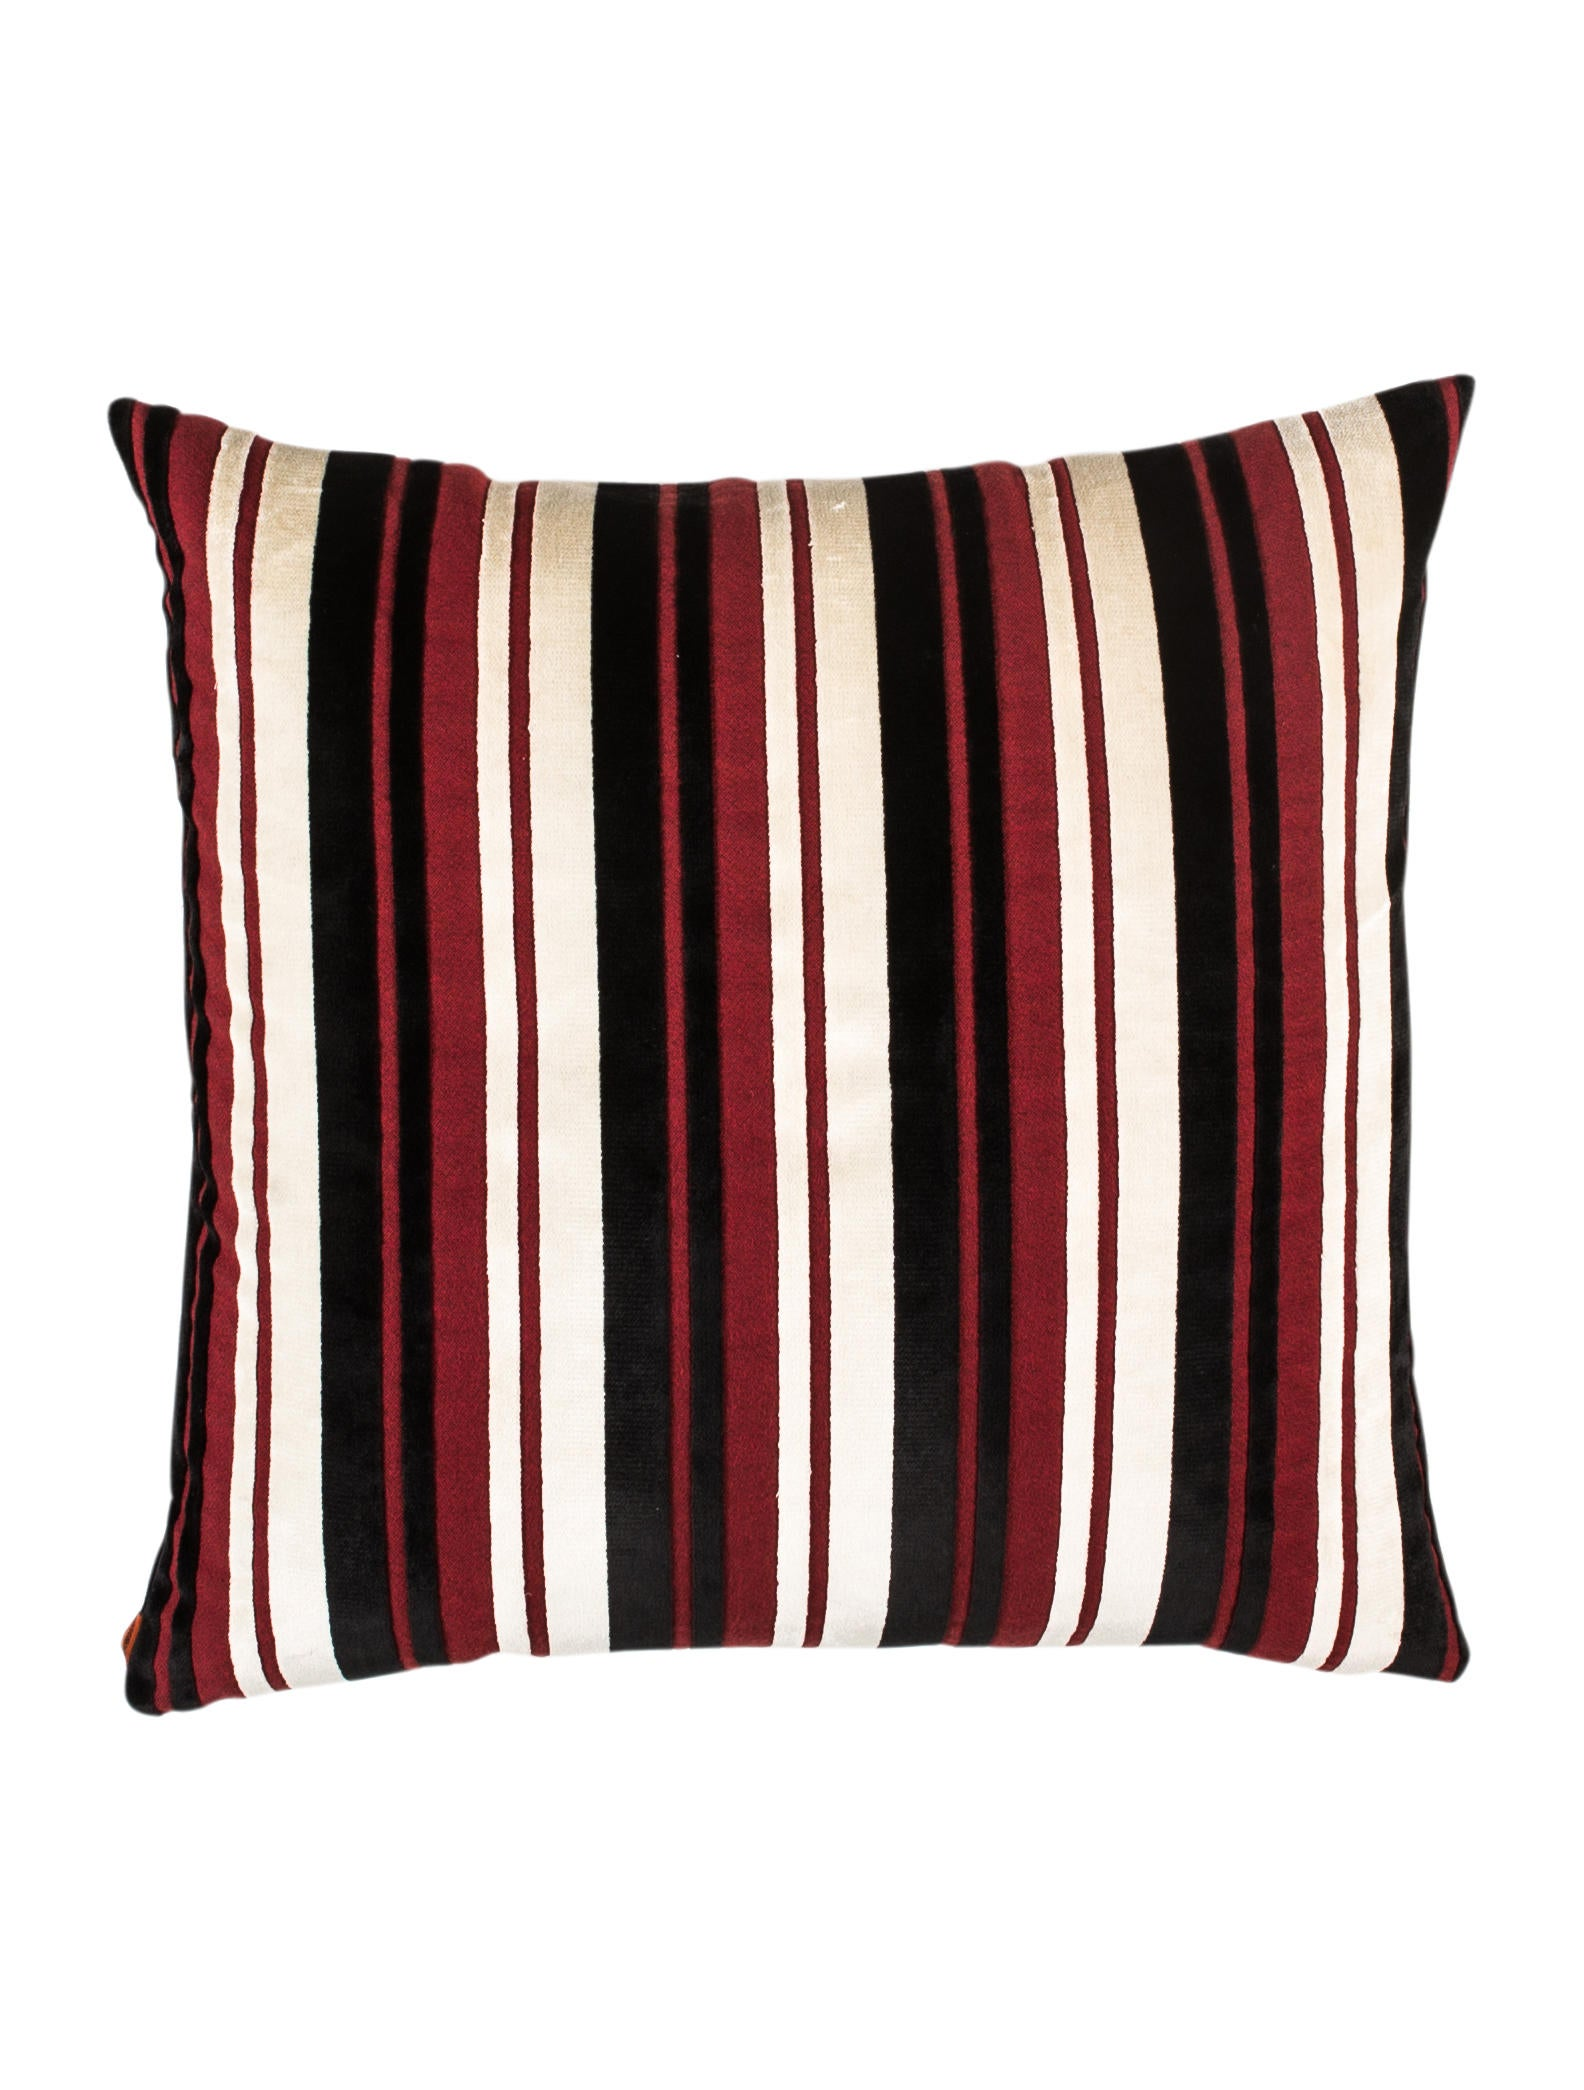 Missoni Throw Pillow - Pillows And Throws - MIS41218 The RealReal